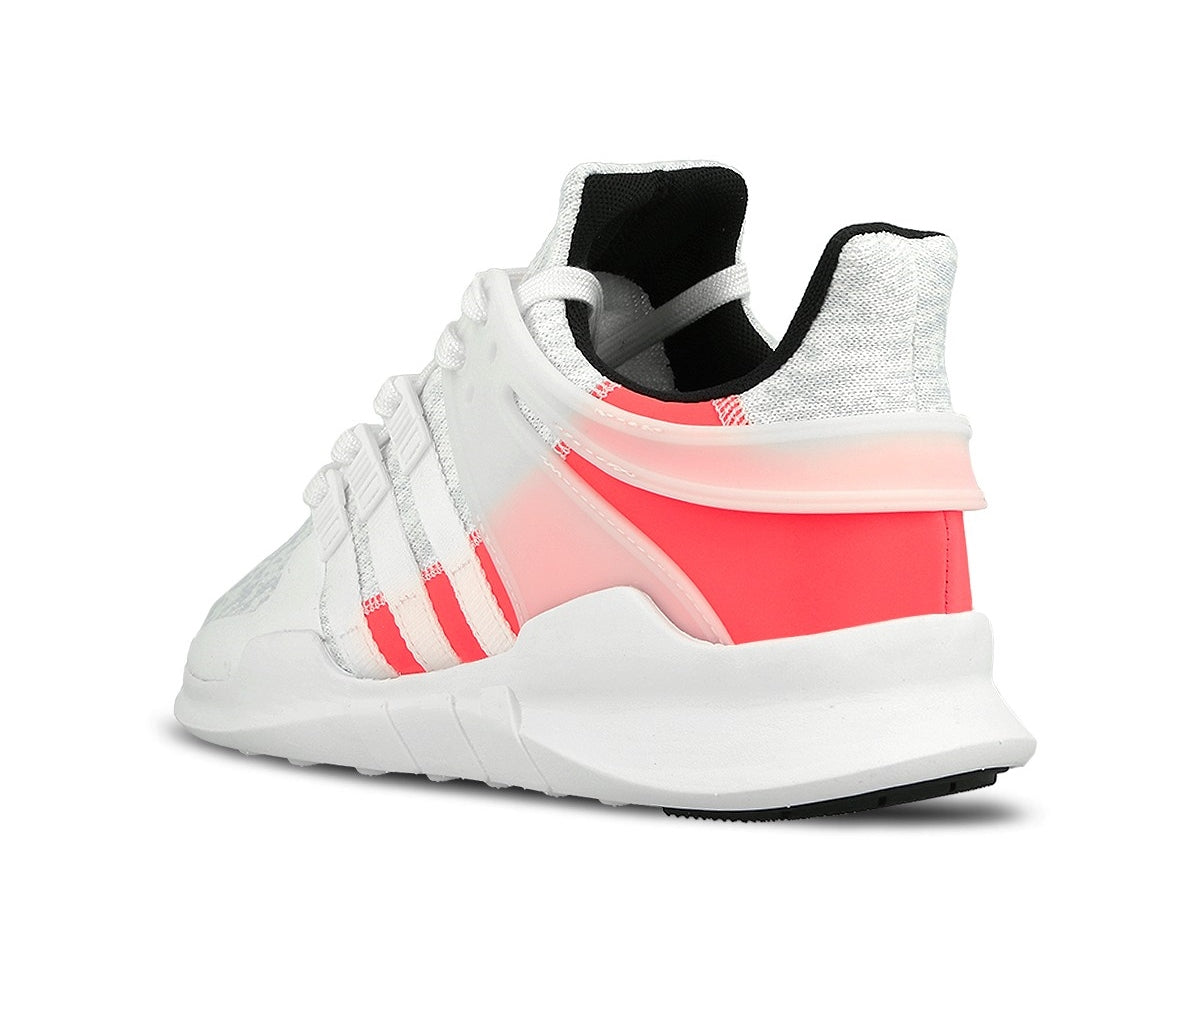 Adidas Originals Eqt Support ADV White/Turbo Men's Shoes Size 10.5